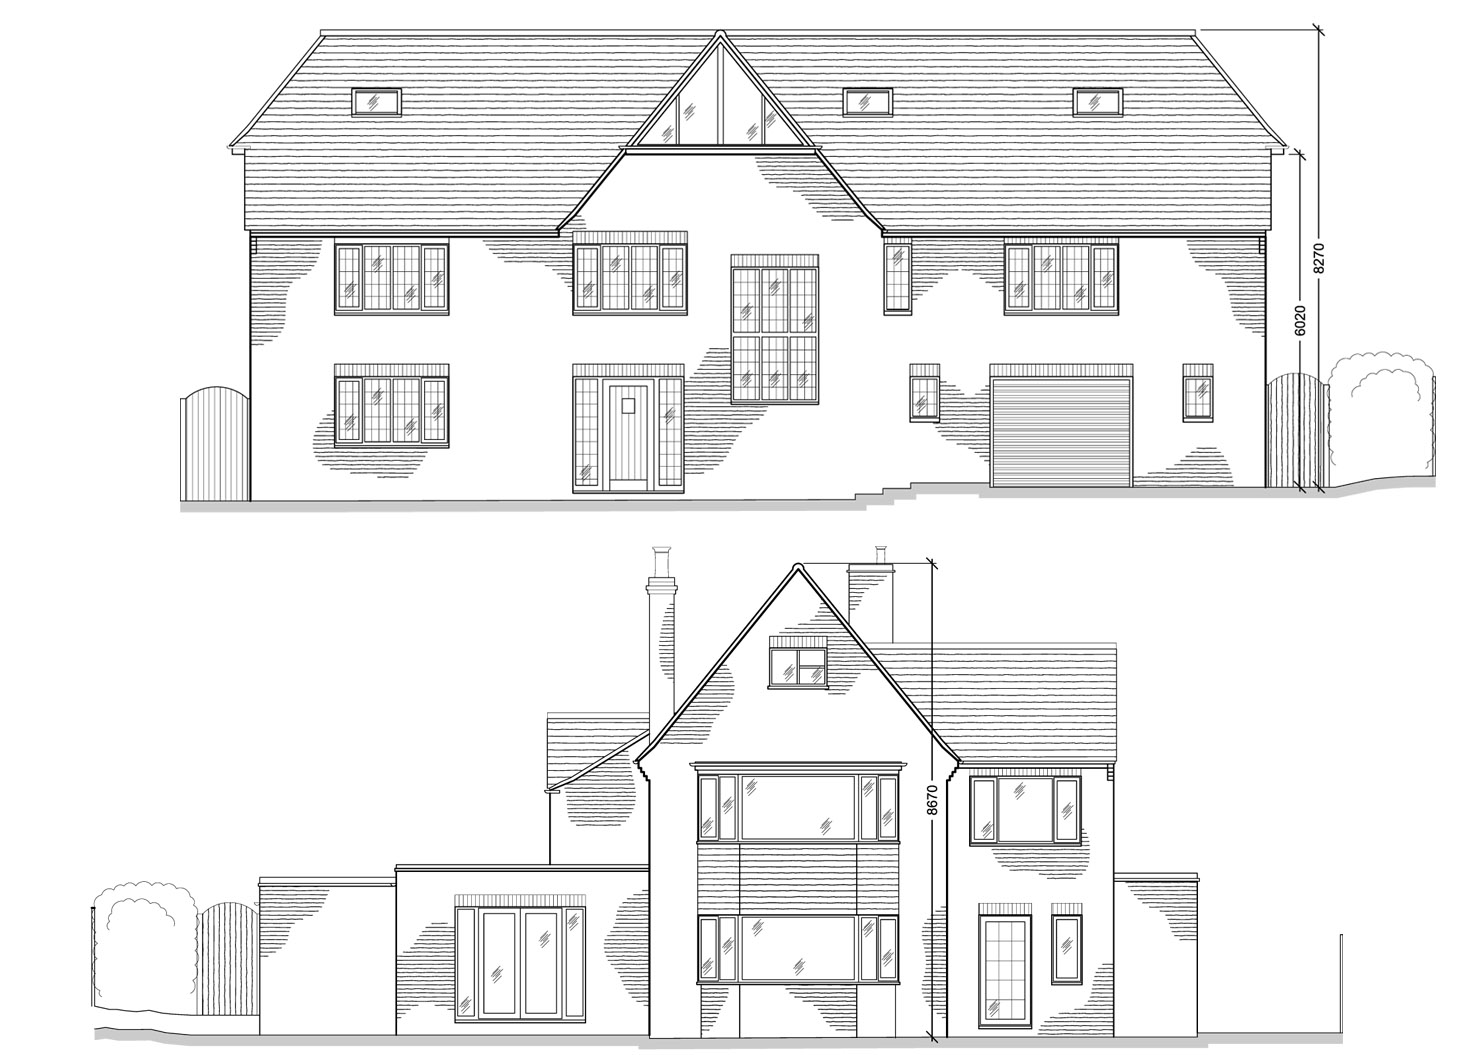 Extension Design By CPA Design Proposed Front Elevation and Existing Rear Elevation